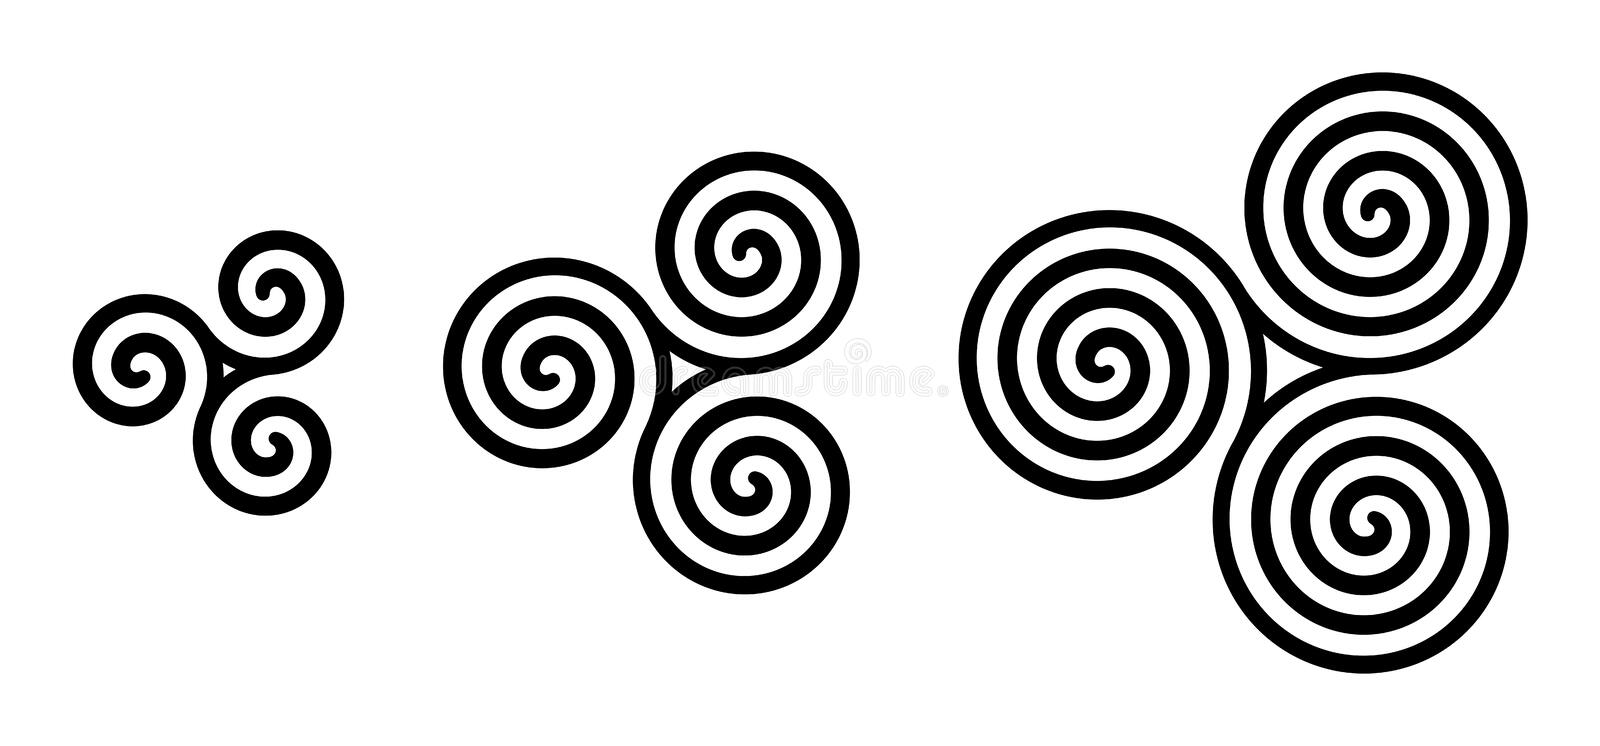 Black Celtic triskelion spirals over white. Triple spirals with two, three and four turns. Motifs of three twisted and connected spirals, exhibiting rotational stock illustration